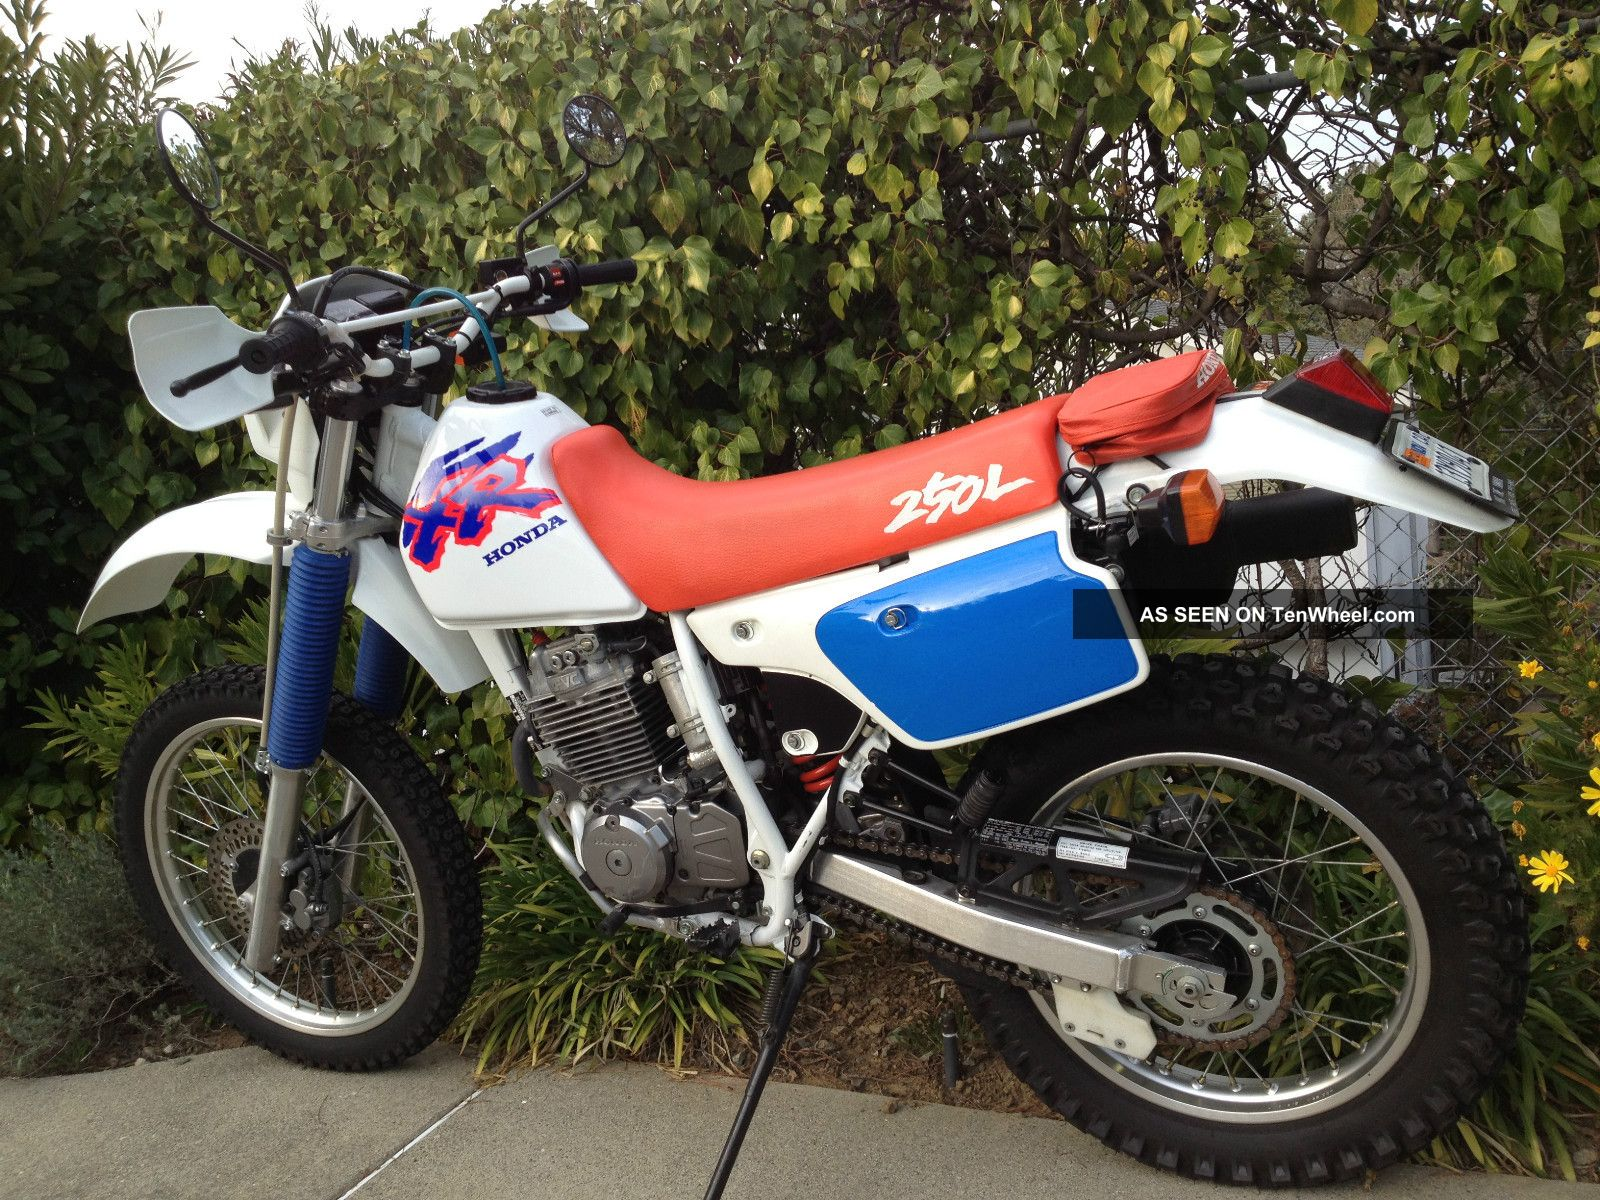 1993 Honda Xr250l Xr250 250 Xr Enduro Dual Sport Adventure XR photo